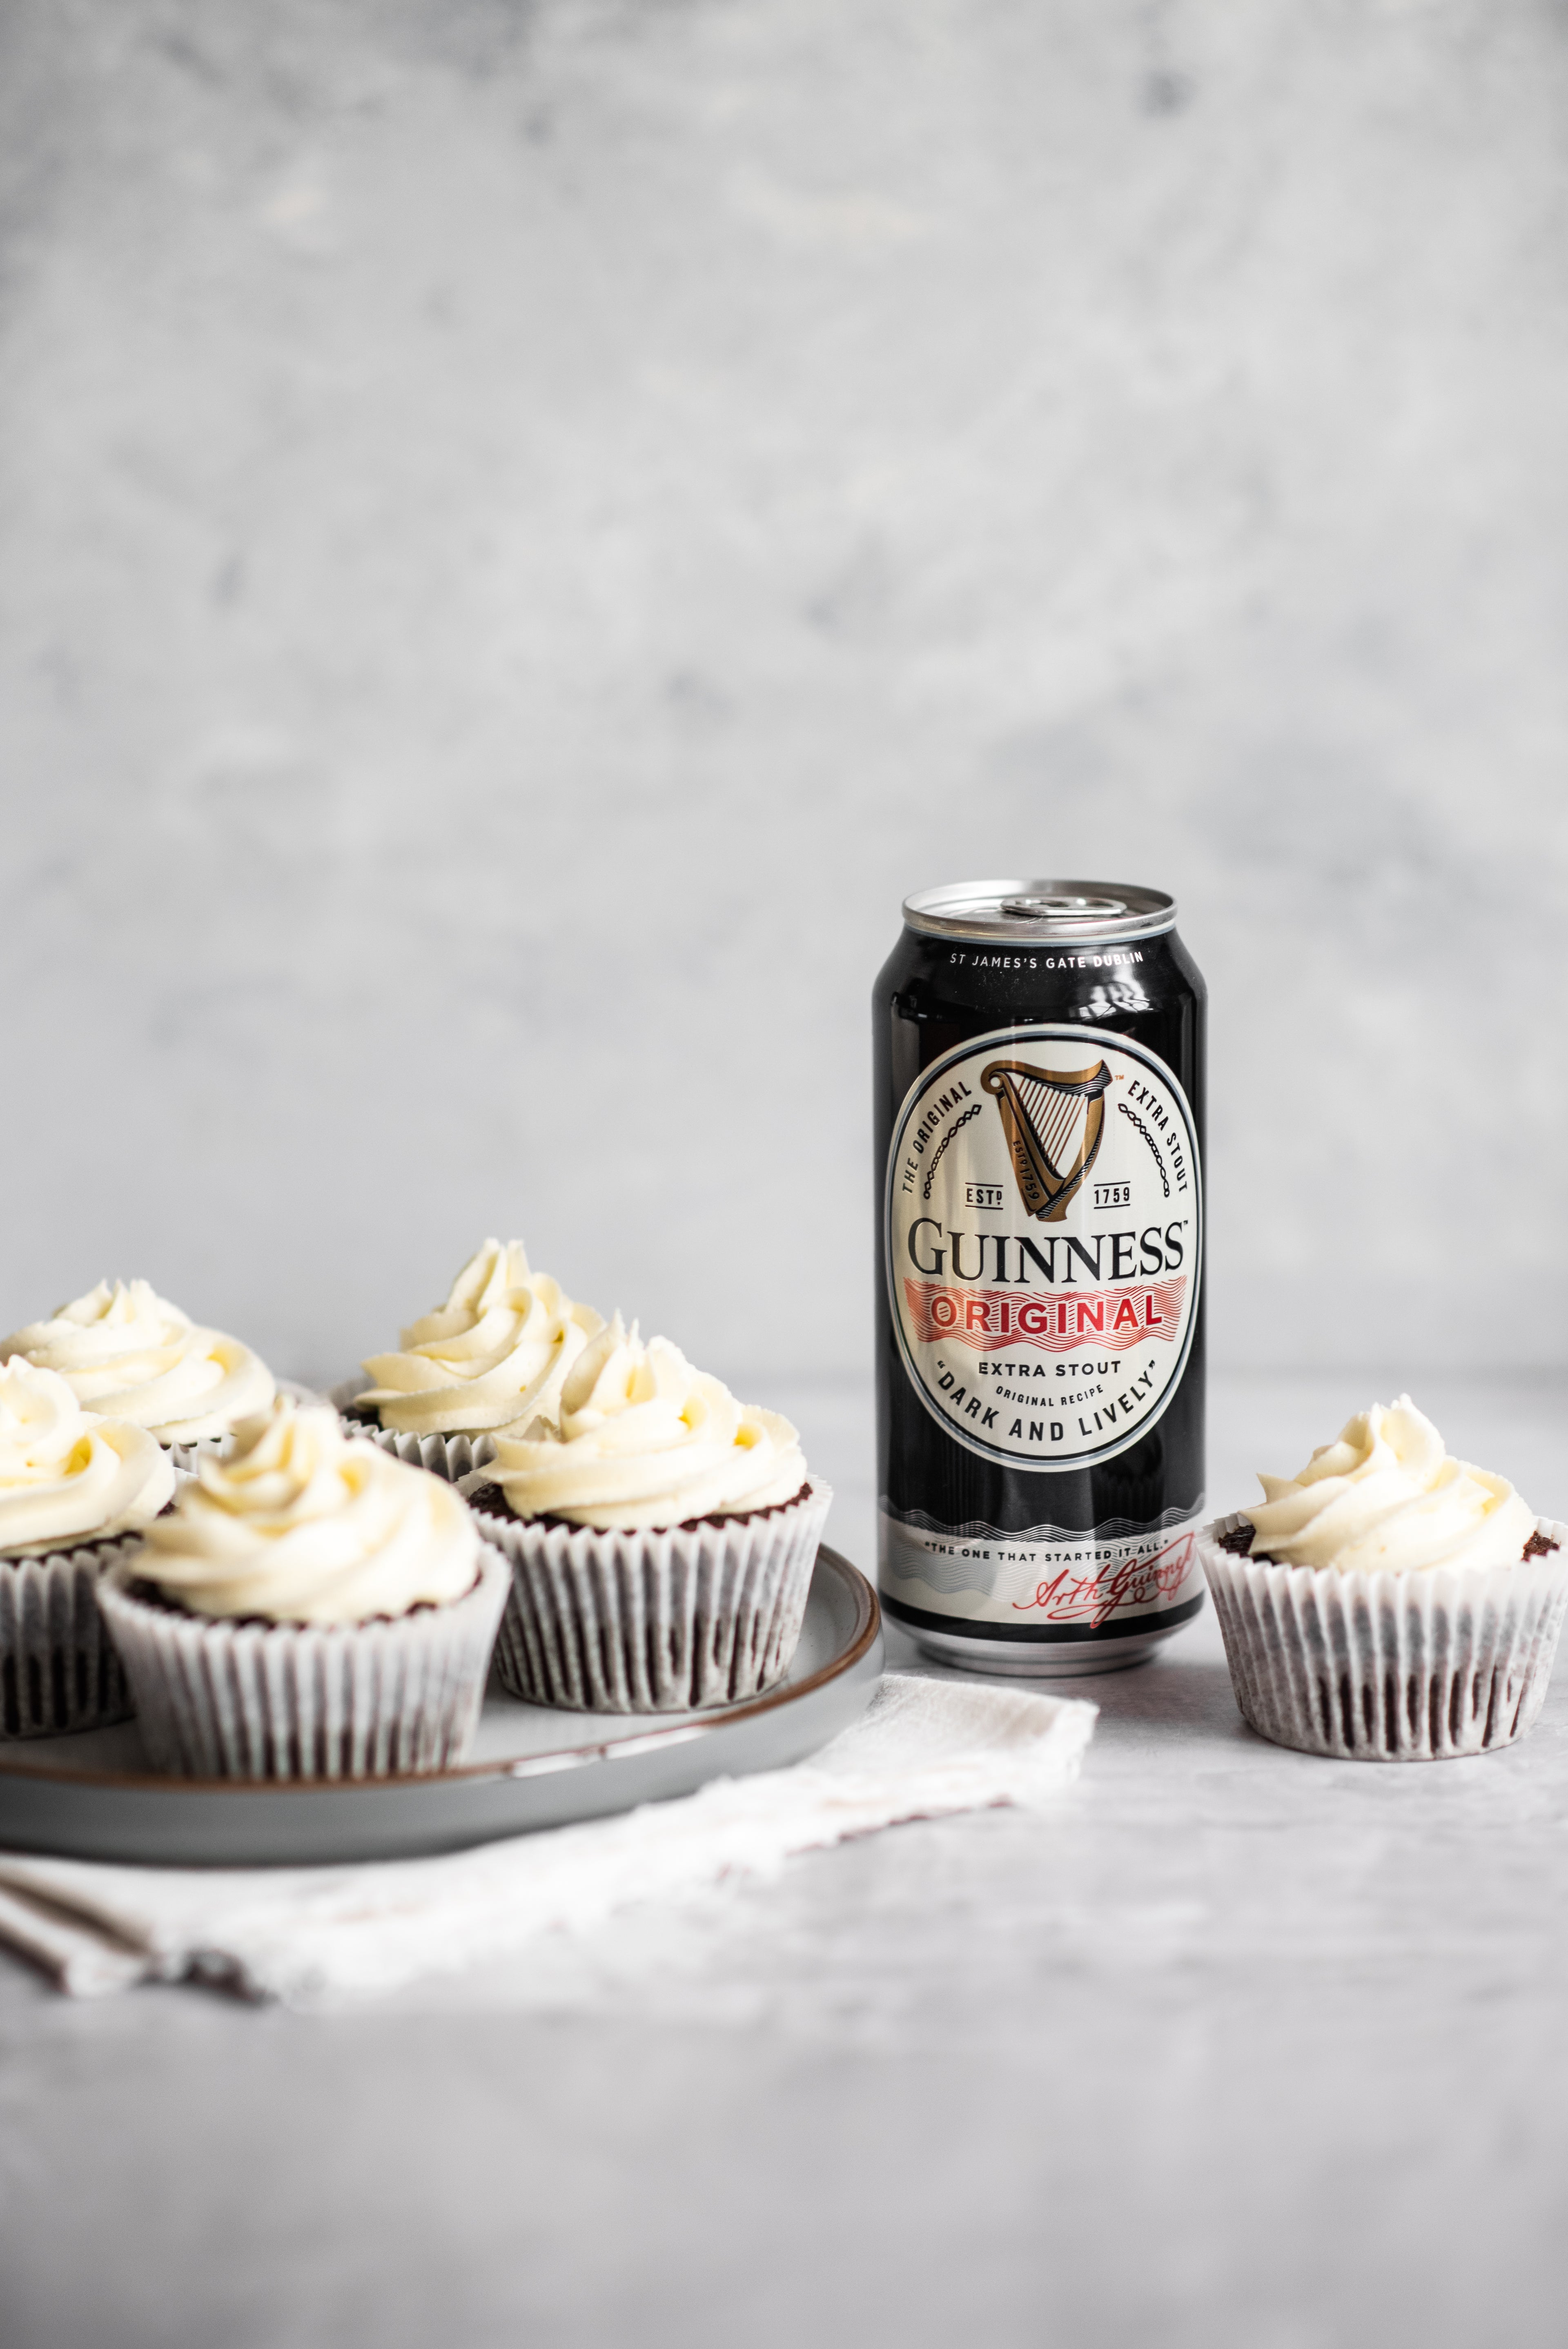 Cupcakes with a can of Guinness next to them